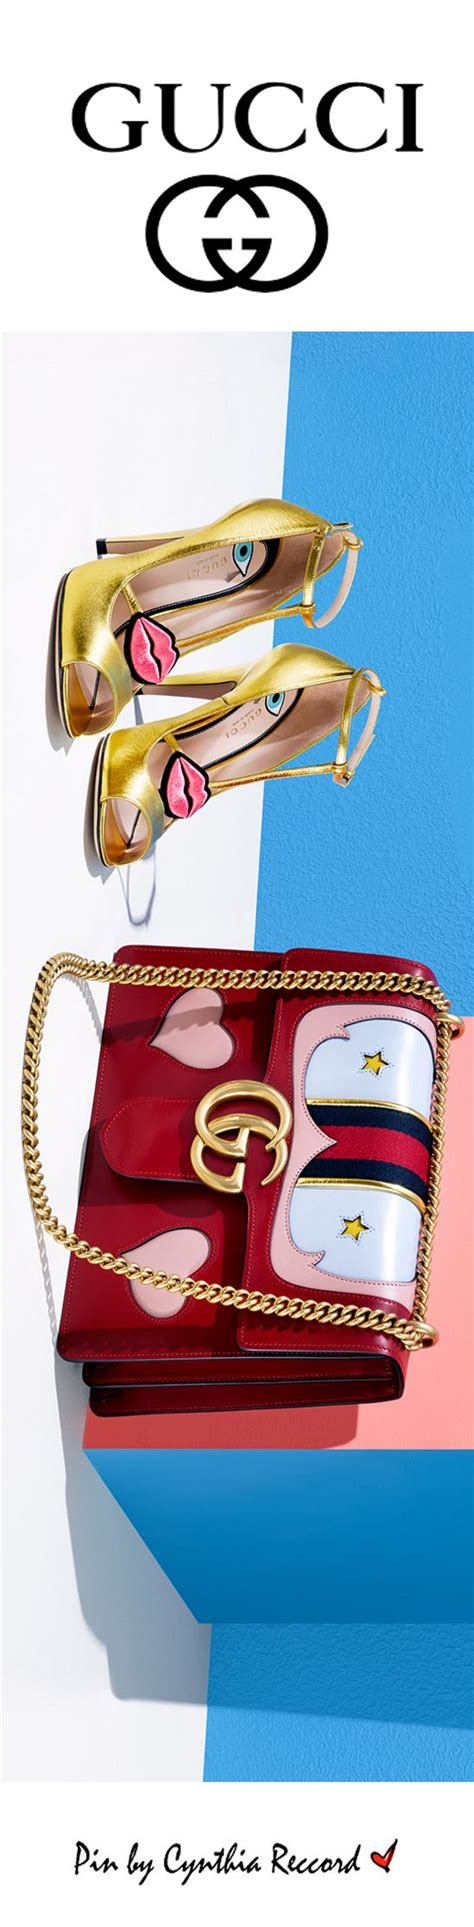 Gucci Cyntia 17 best images about cynthia reccord on